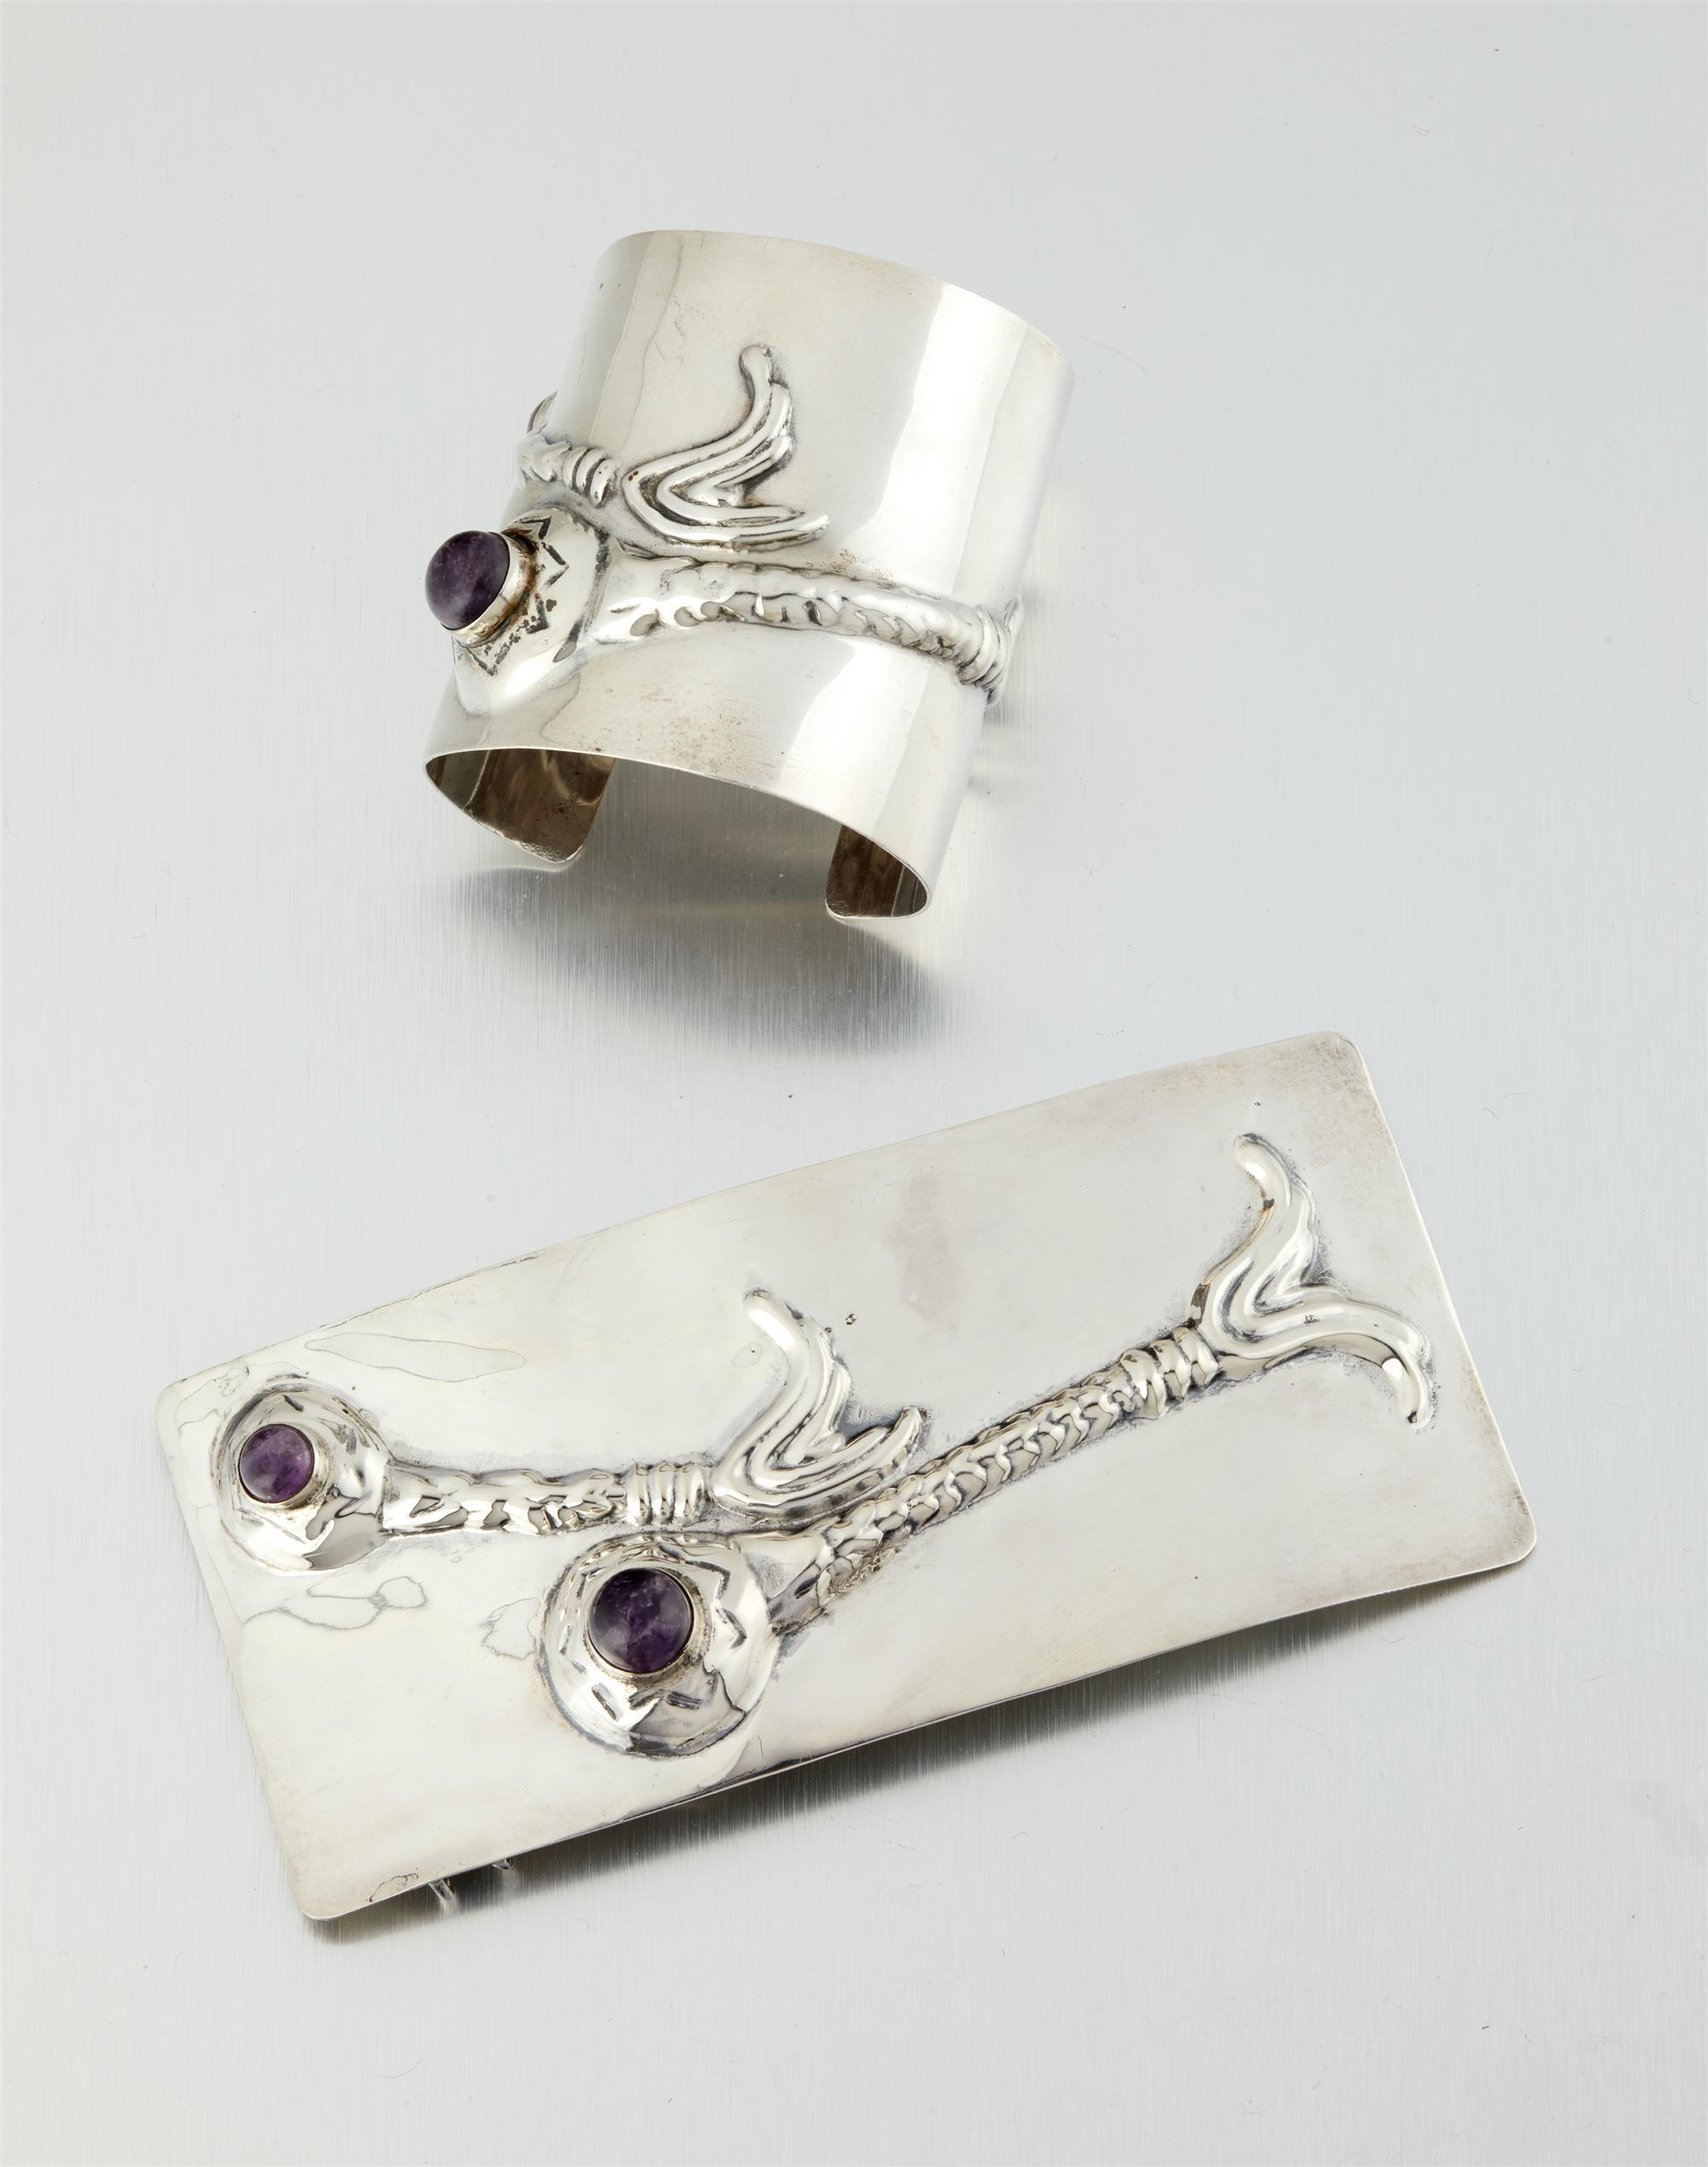 """Two Hubert Harmon sterling silver """"Cyclops"""" or """"Sea Serpent"""" items"""